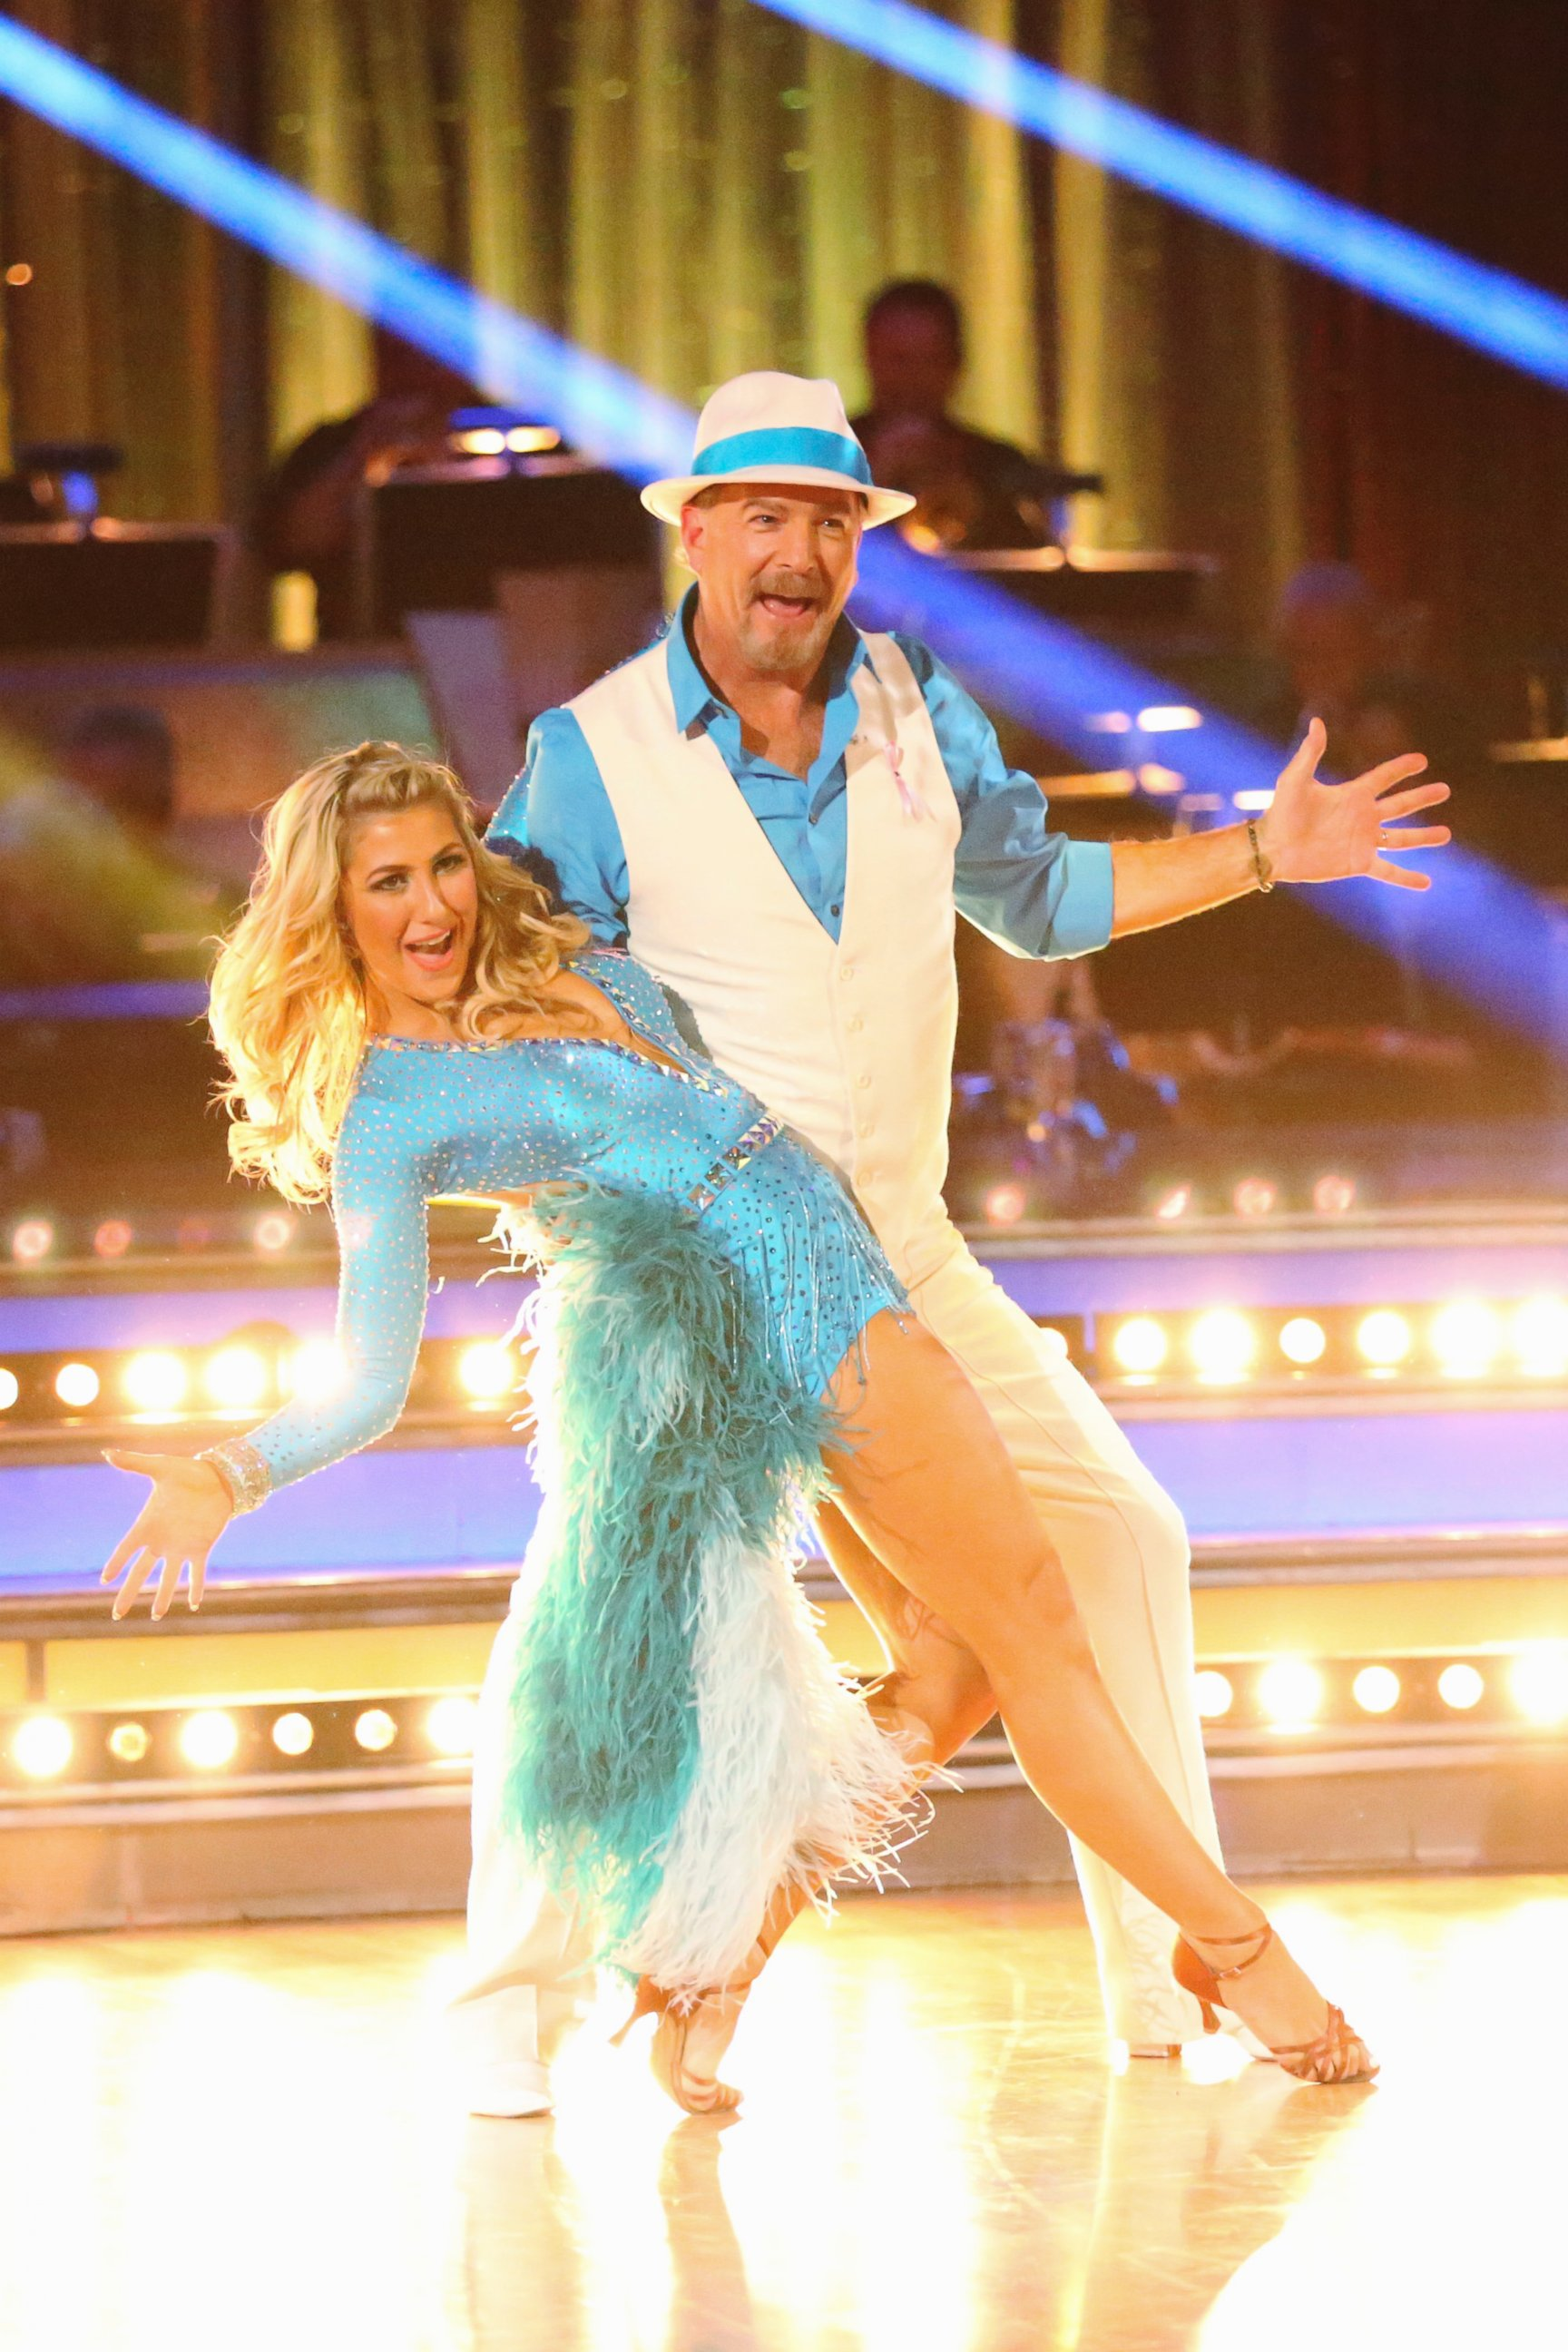 ABC dwts engvall 133532 3596 ful Dancing With the Stars: Bill Engvall Booted on First Night of Finals